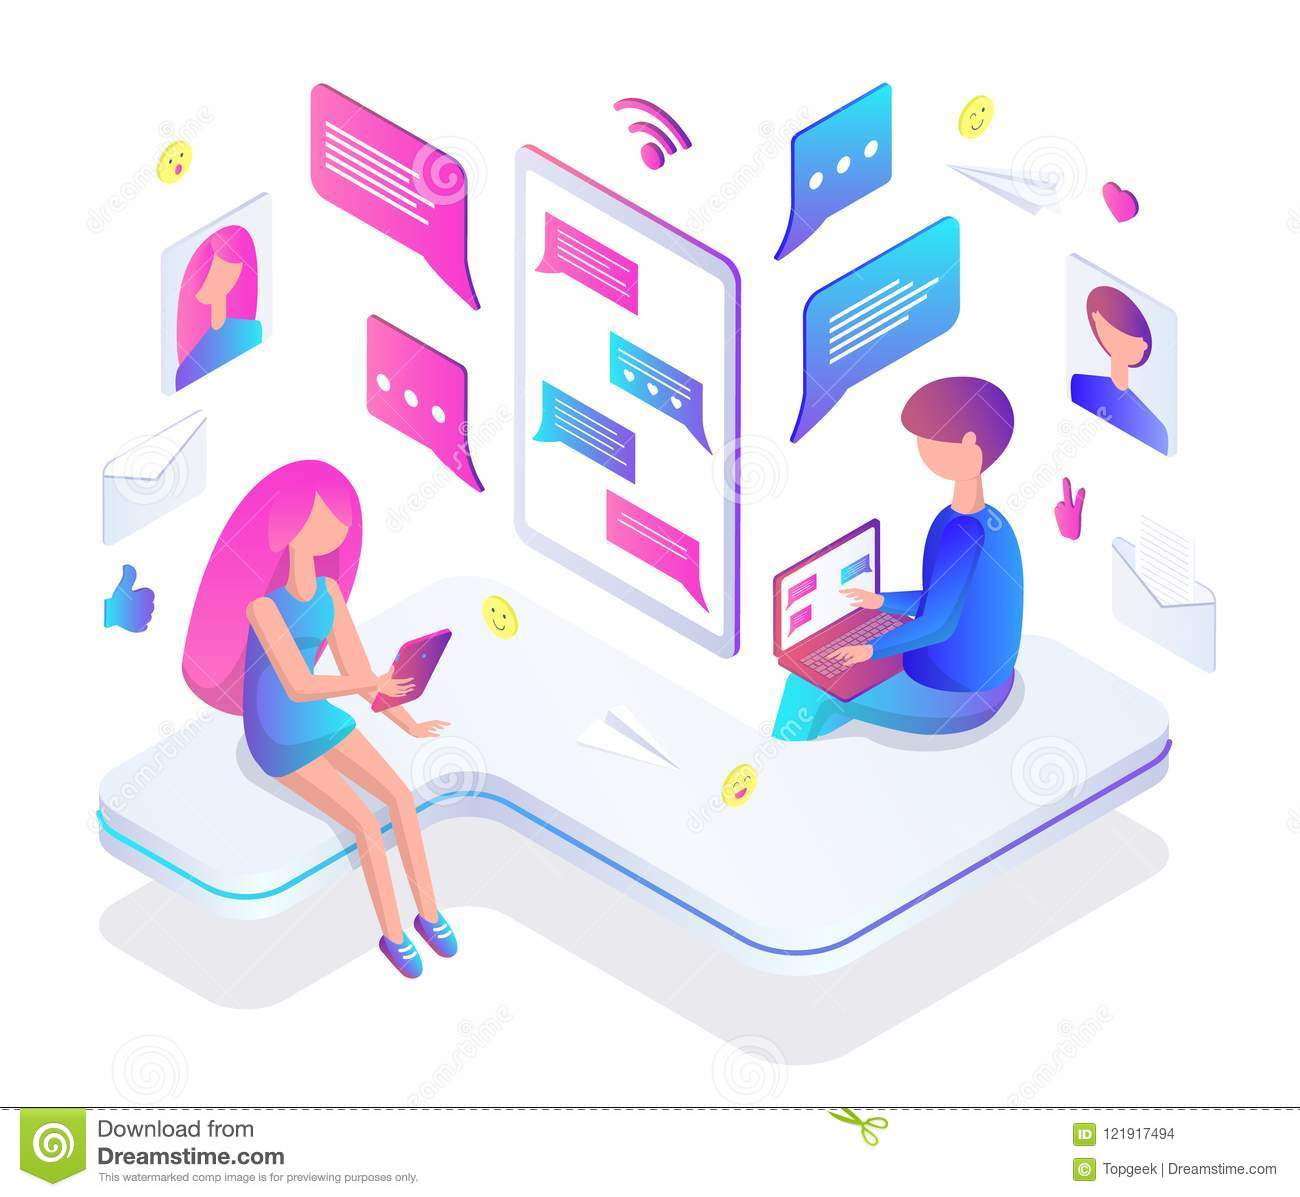 Online chatting for teens